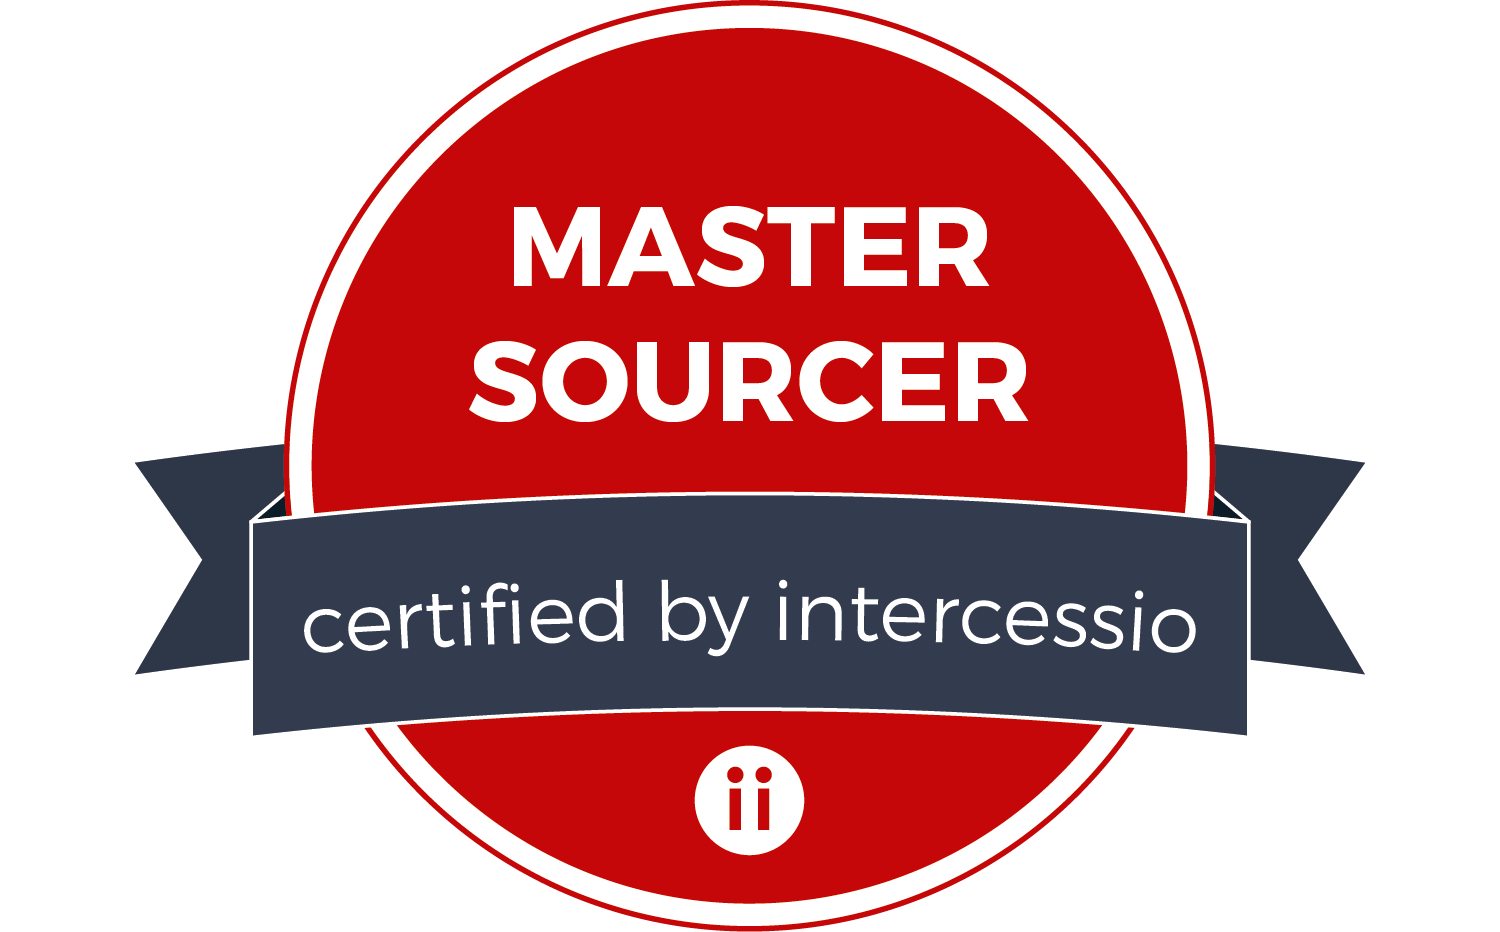 Proud to be a Master Sourcer certified by Intercessio